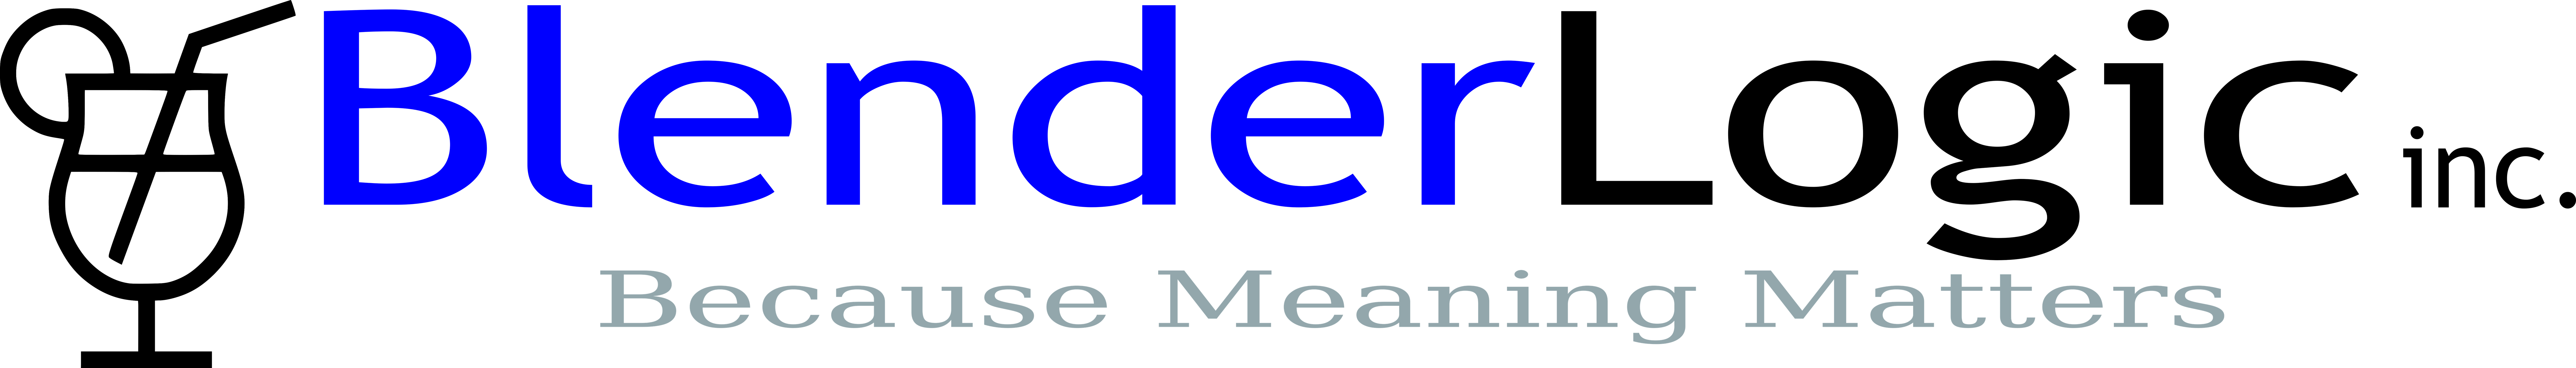 Blender Logic Logo